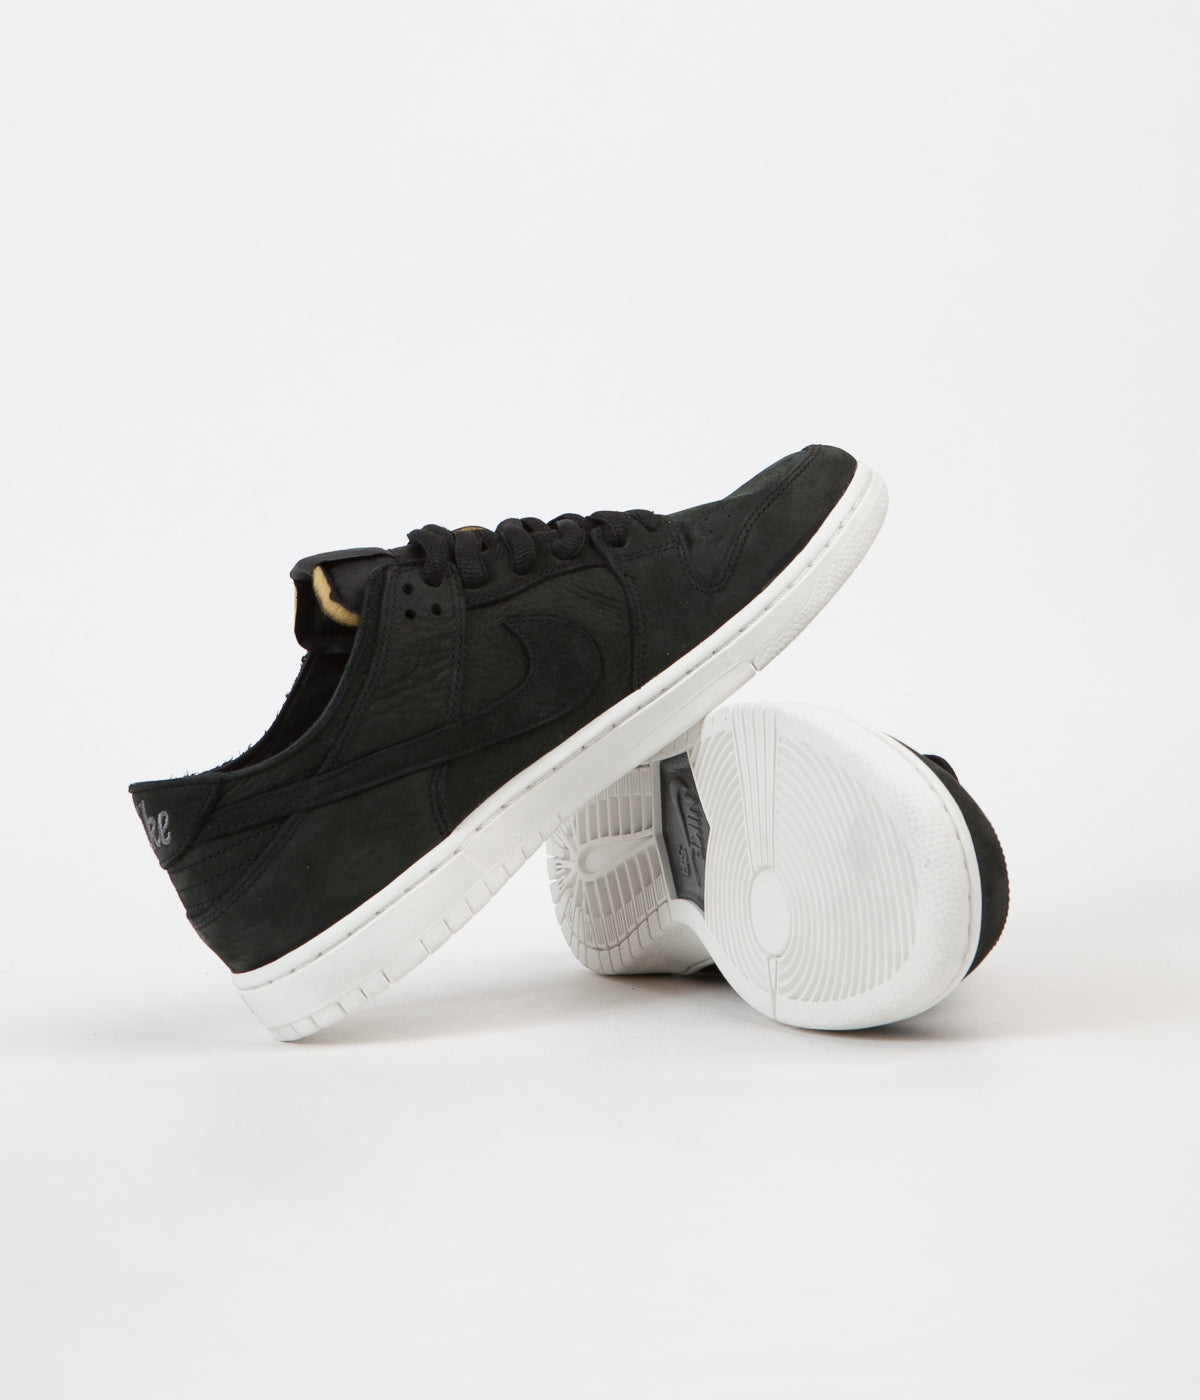 a0c89a880a8e ... Nike SB Dunk Low Pro Deconstructed Shoes - Black   Black - Summit White  - Anthracite ...